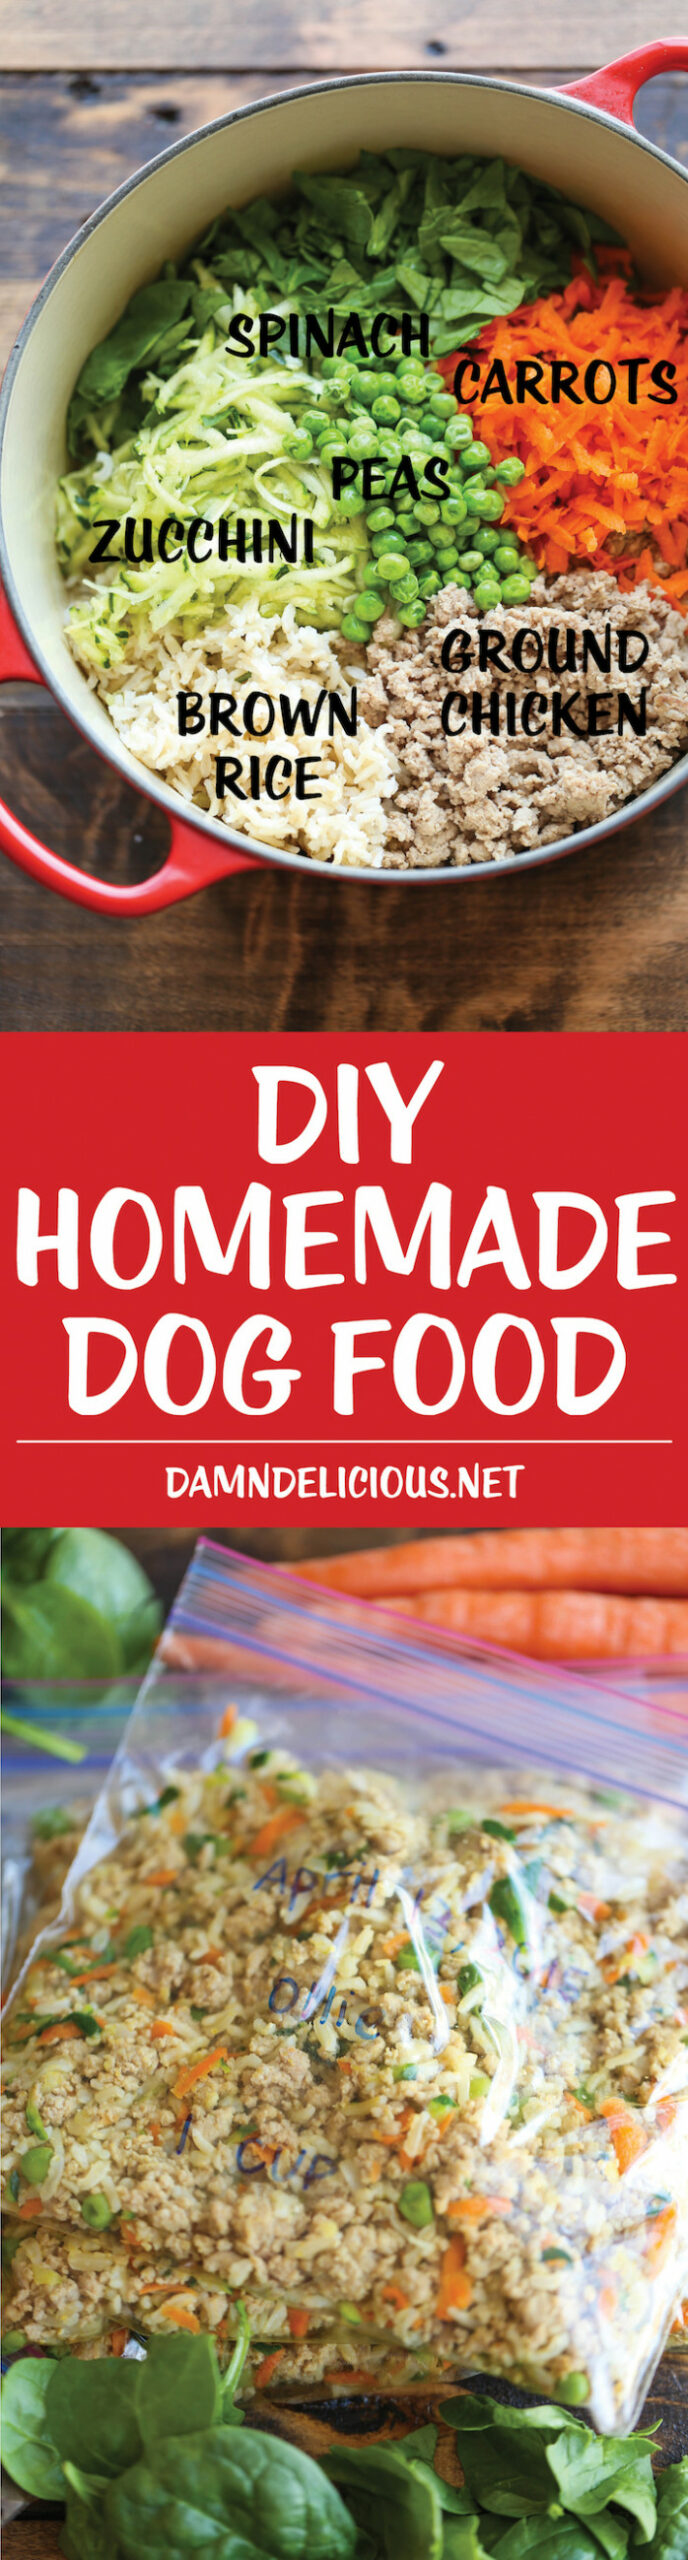 DIY Homemade Dog Food - recipes dog food